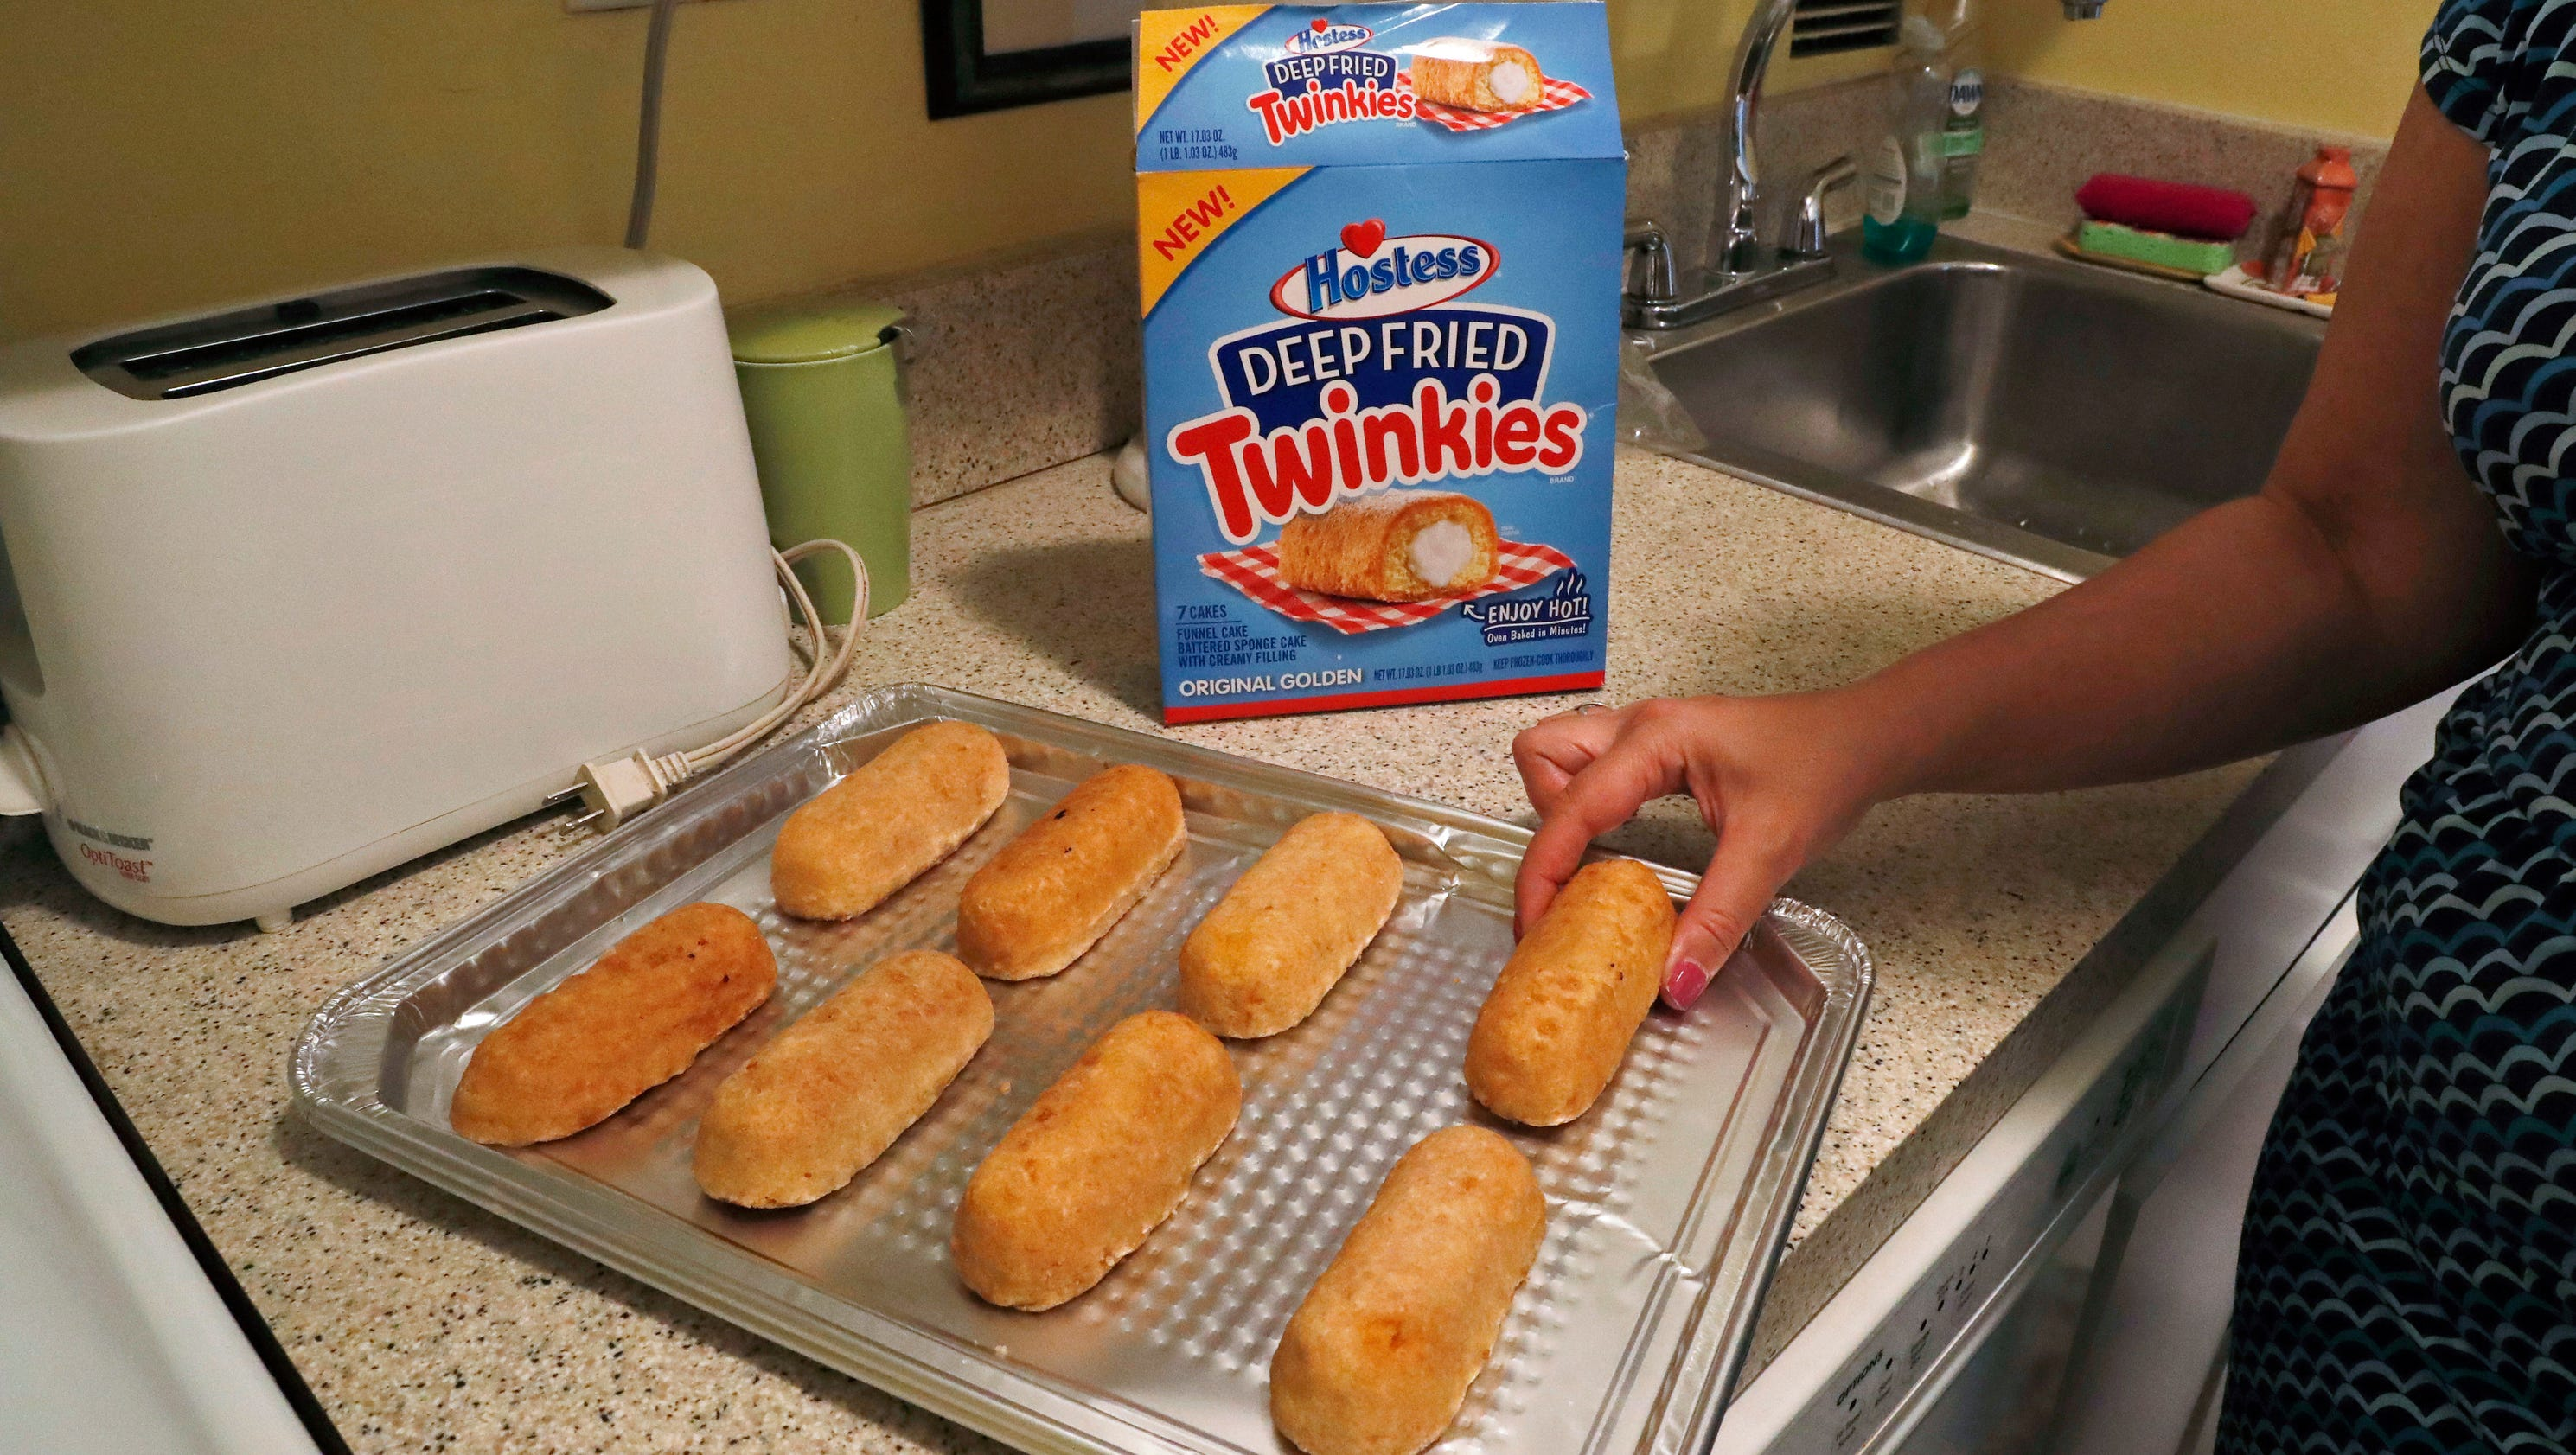 Hostess unveils Deep Fried Twinkies you can make at home